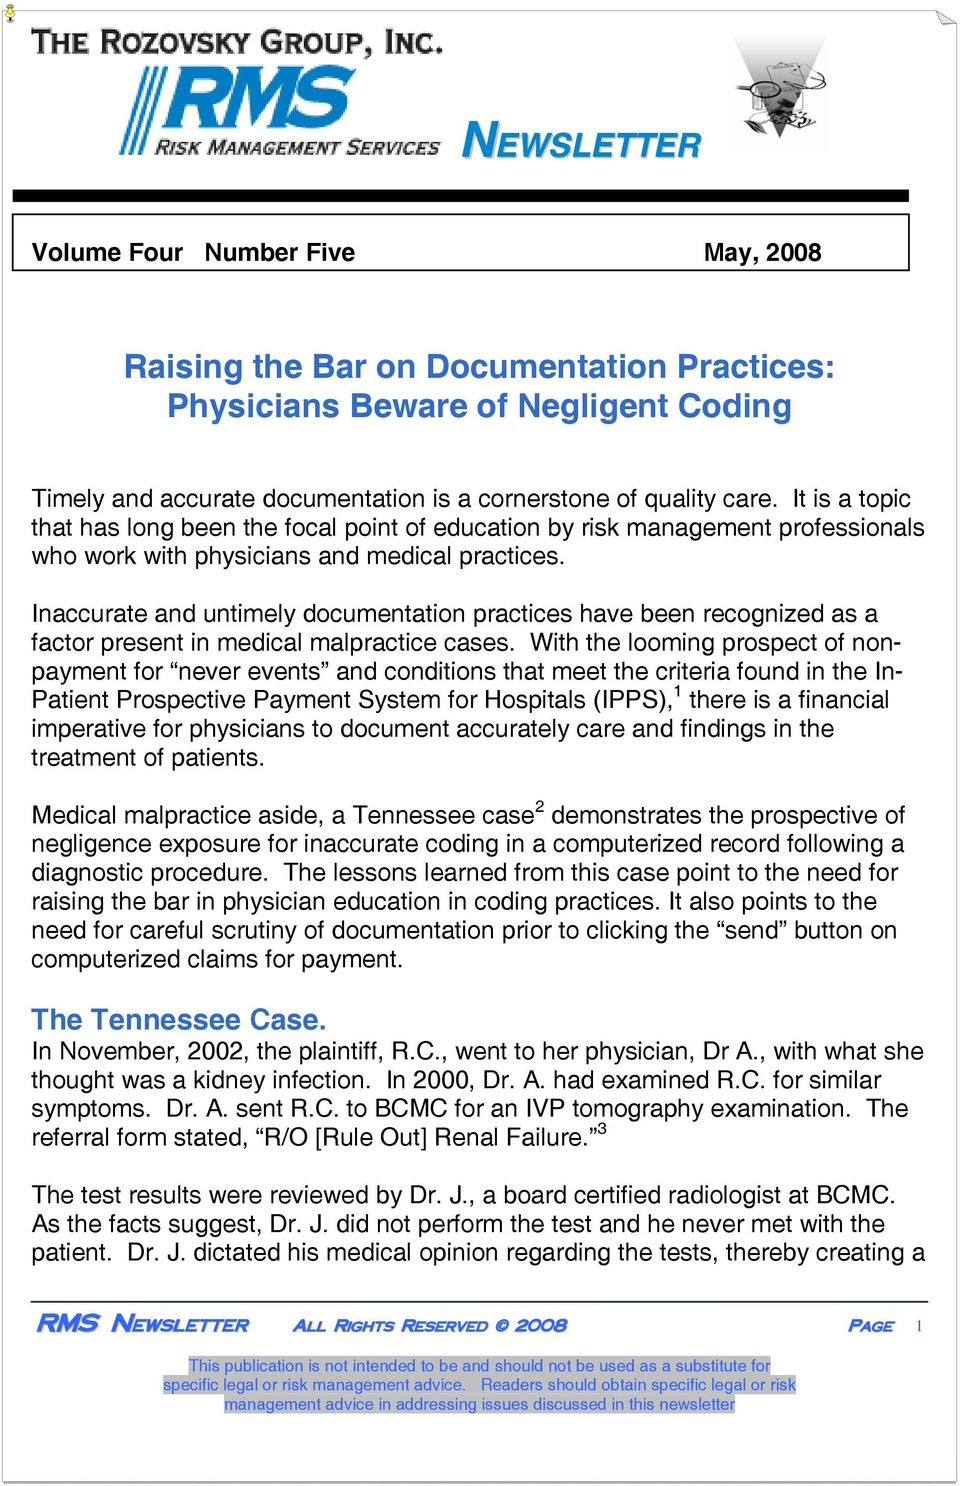 Inaccurate and untimely documentation practices have been recognized as a factor present in medical malpractice cases.